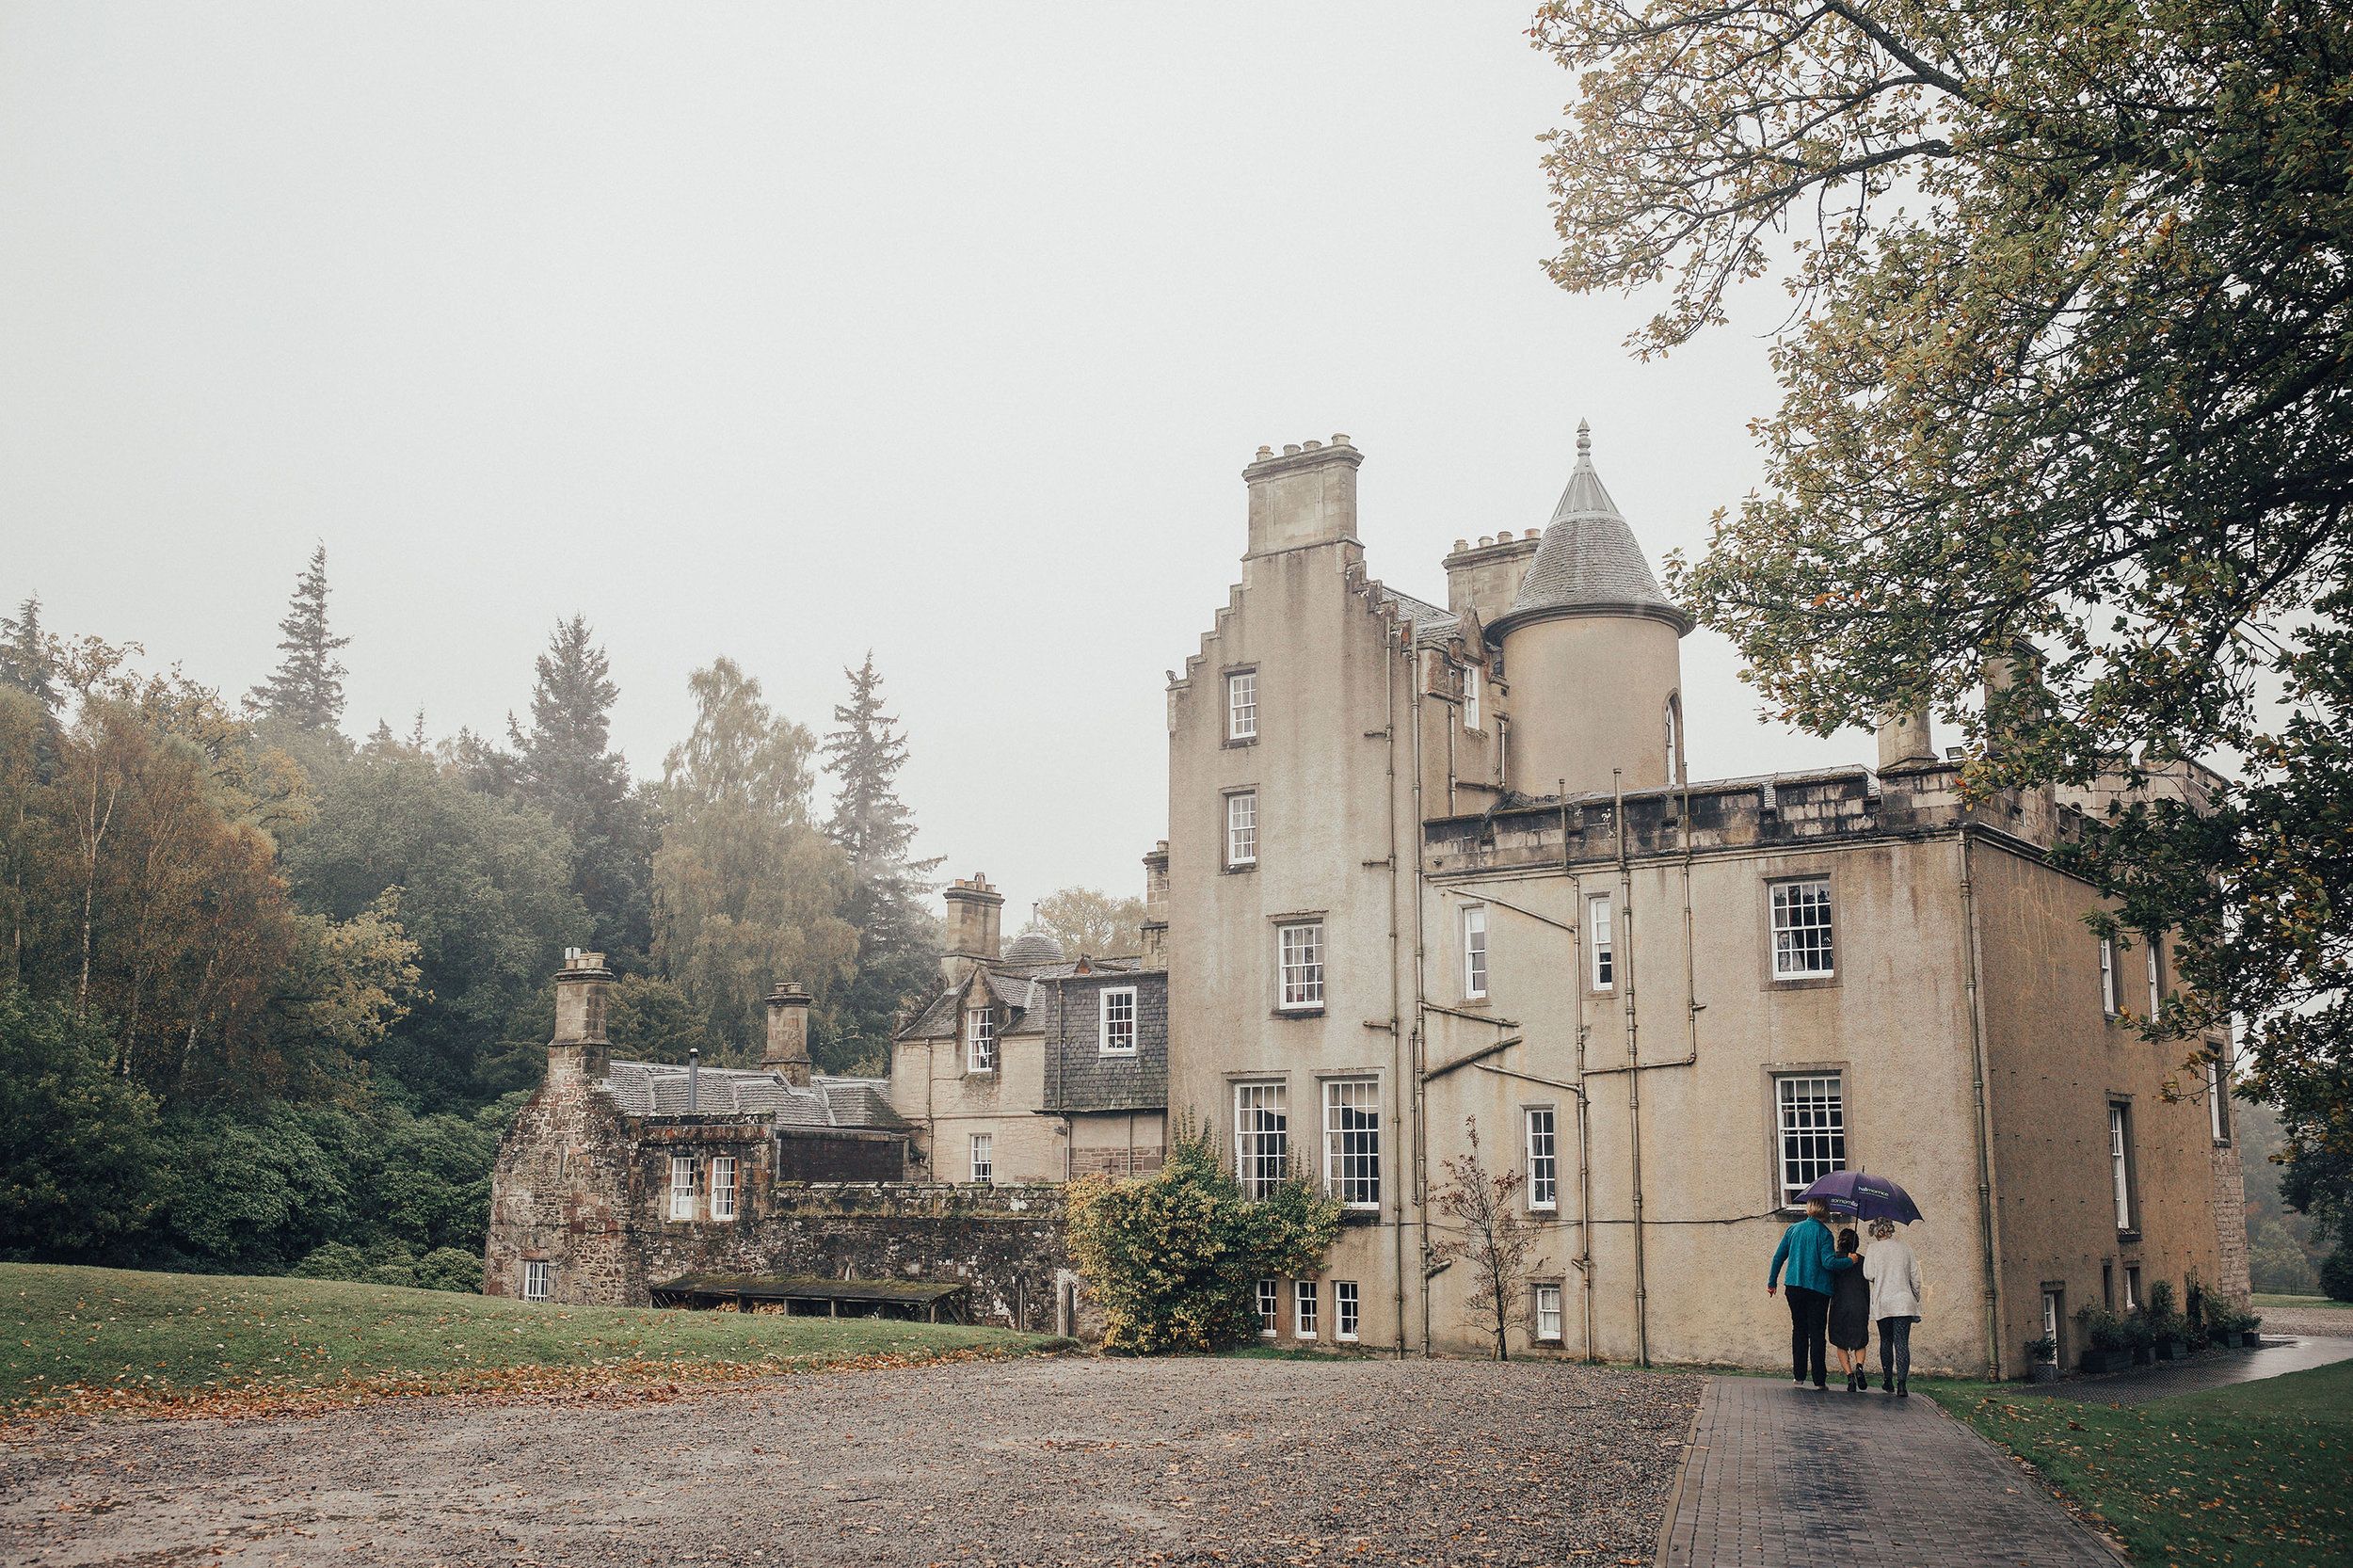 BOTURICH_CASTLE_WEDDING_PHOTOGRAPHER_PJ_PHILLIPS_PHOTOGRAPHY_23.jpg